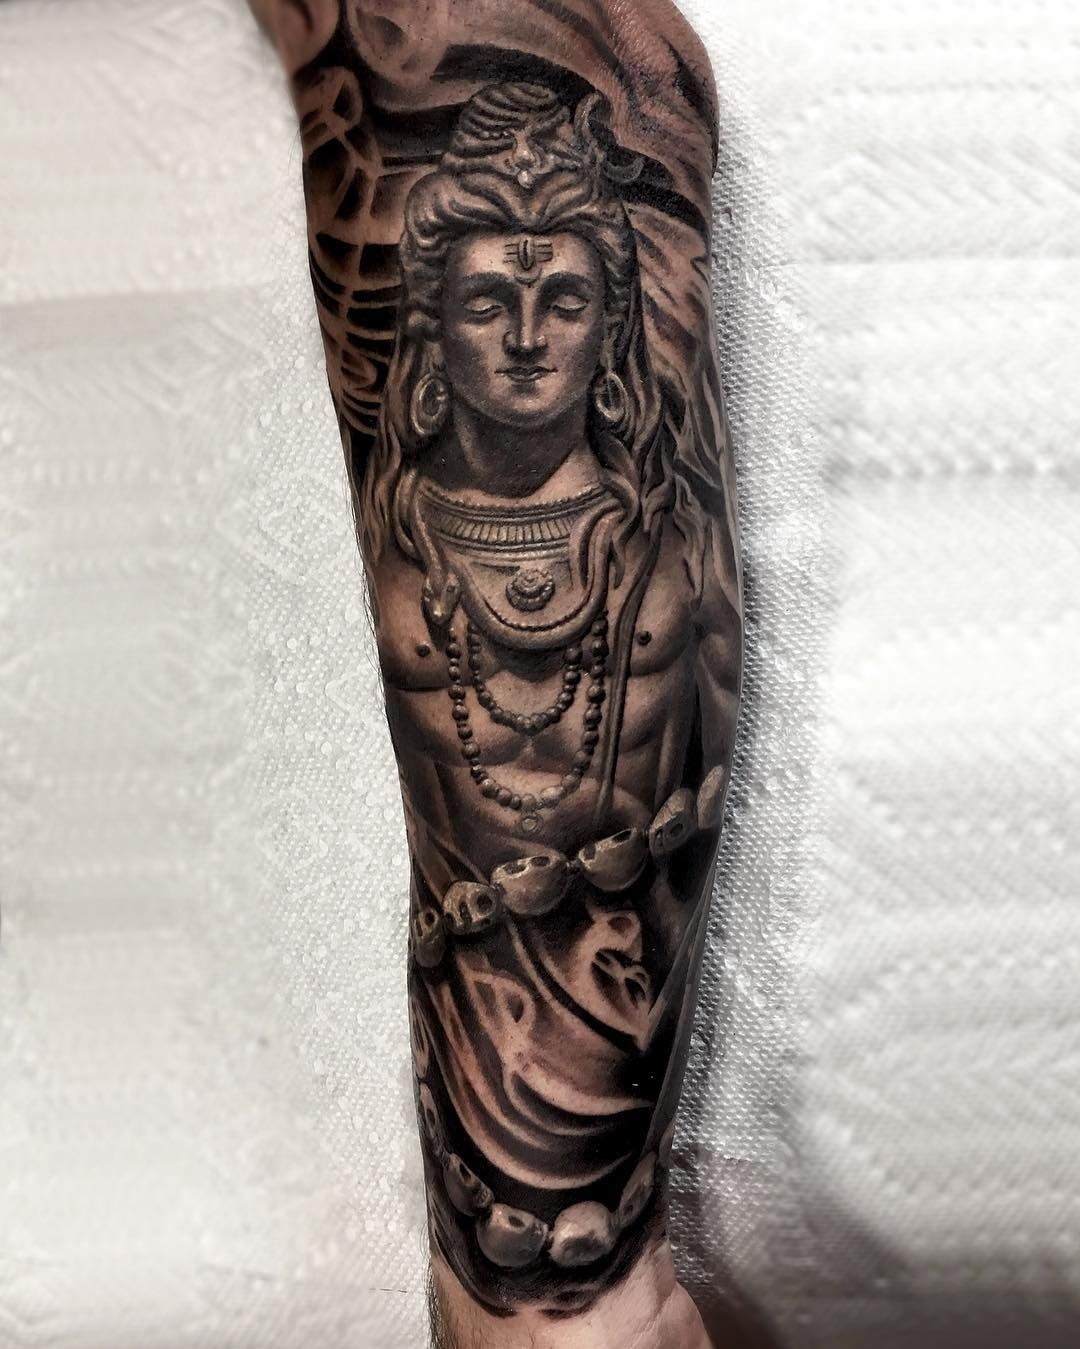 shiva god statue tattoos pinterest shiva tattoo tattoo and tatoo. Black Bedroom Furniture Sets. Home Design Ideas